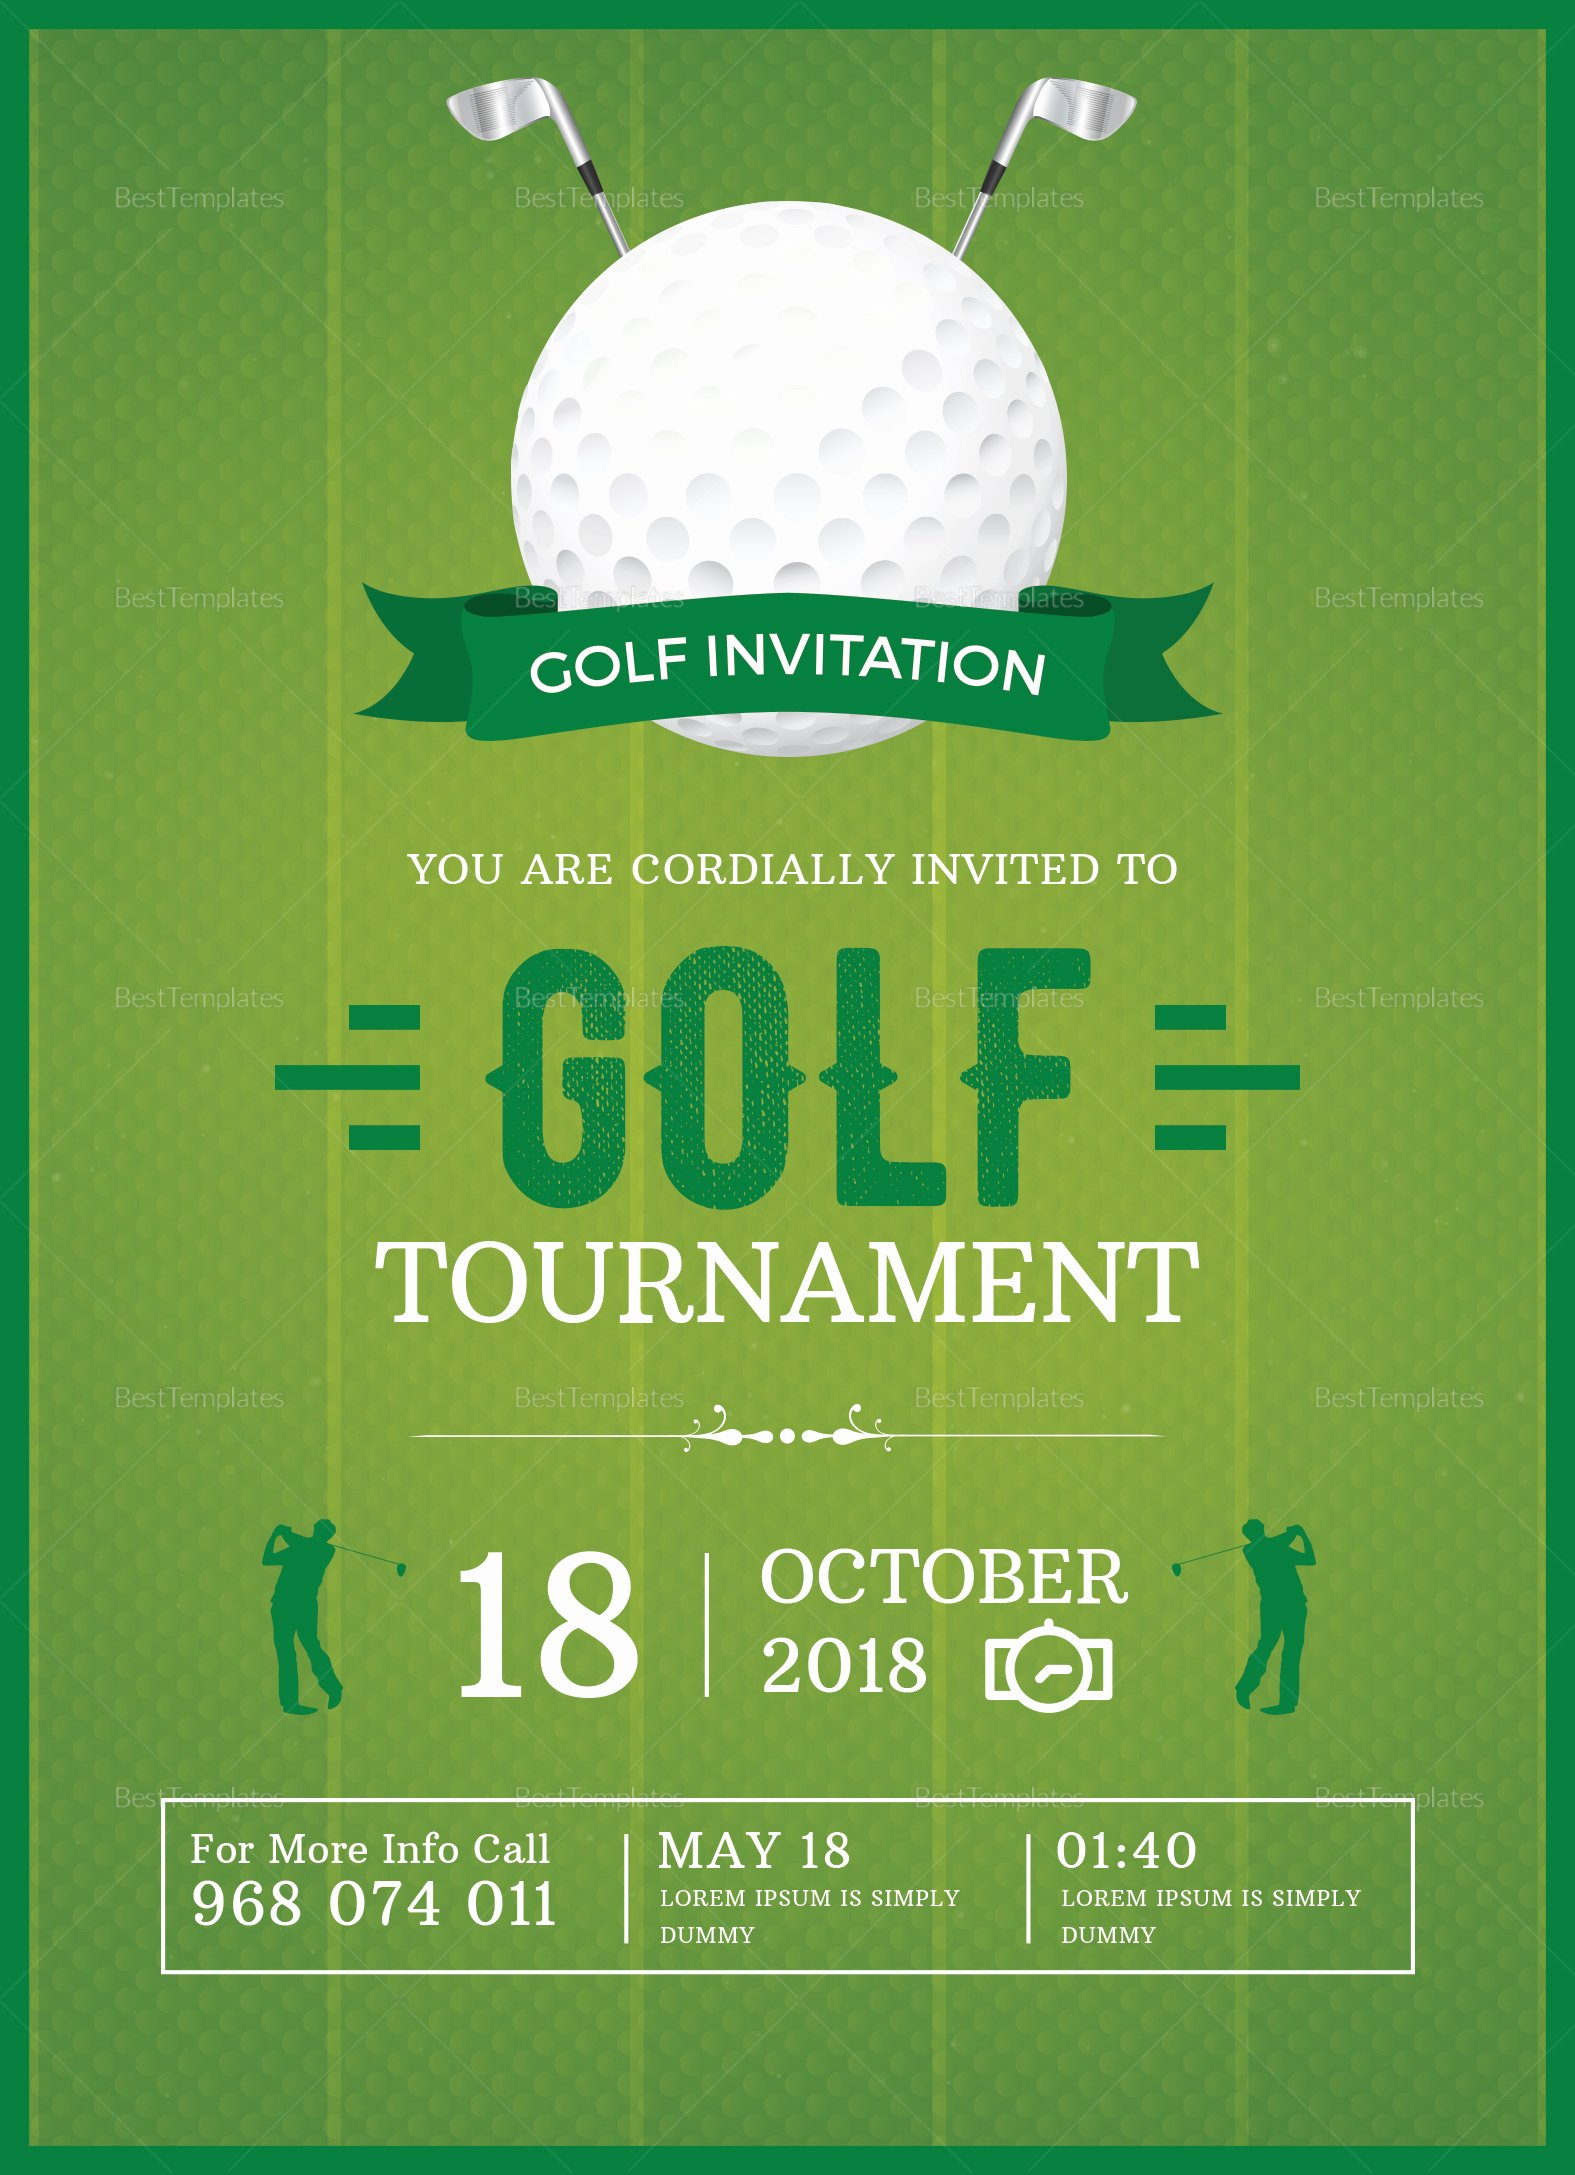 Golf Invitation Template Free Beautiful Golf Invitation Design Template In Word Psd Publisher